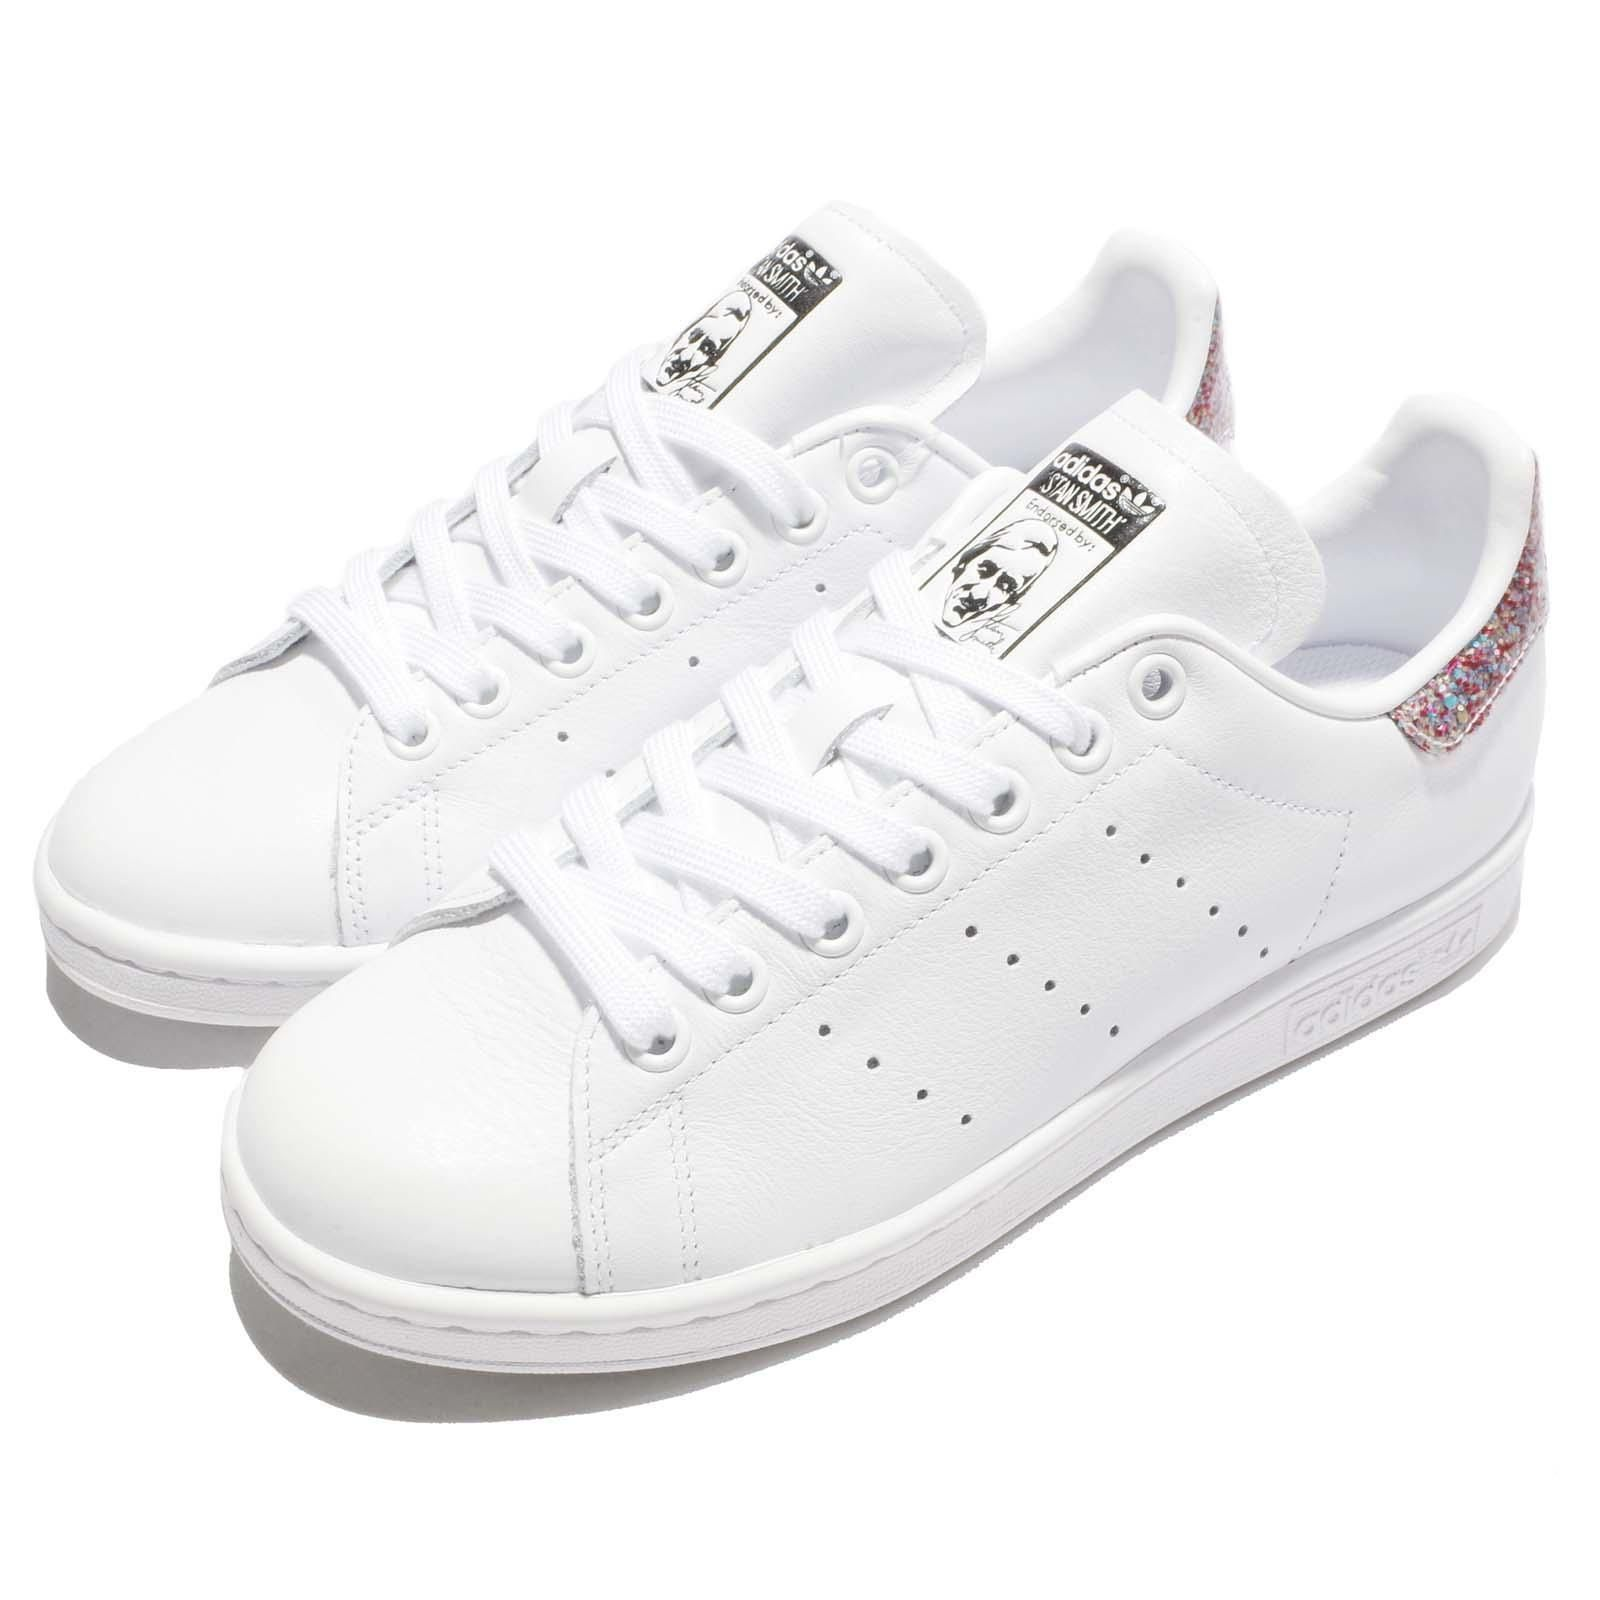 41db46ede7d Adidas Originals Stan Smith W Glitter White Rainbow Women Shoes Sneakers  S76912